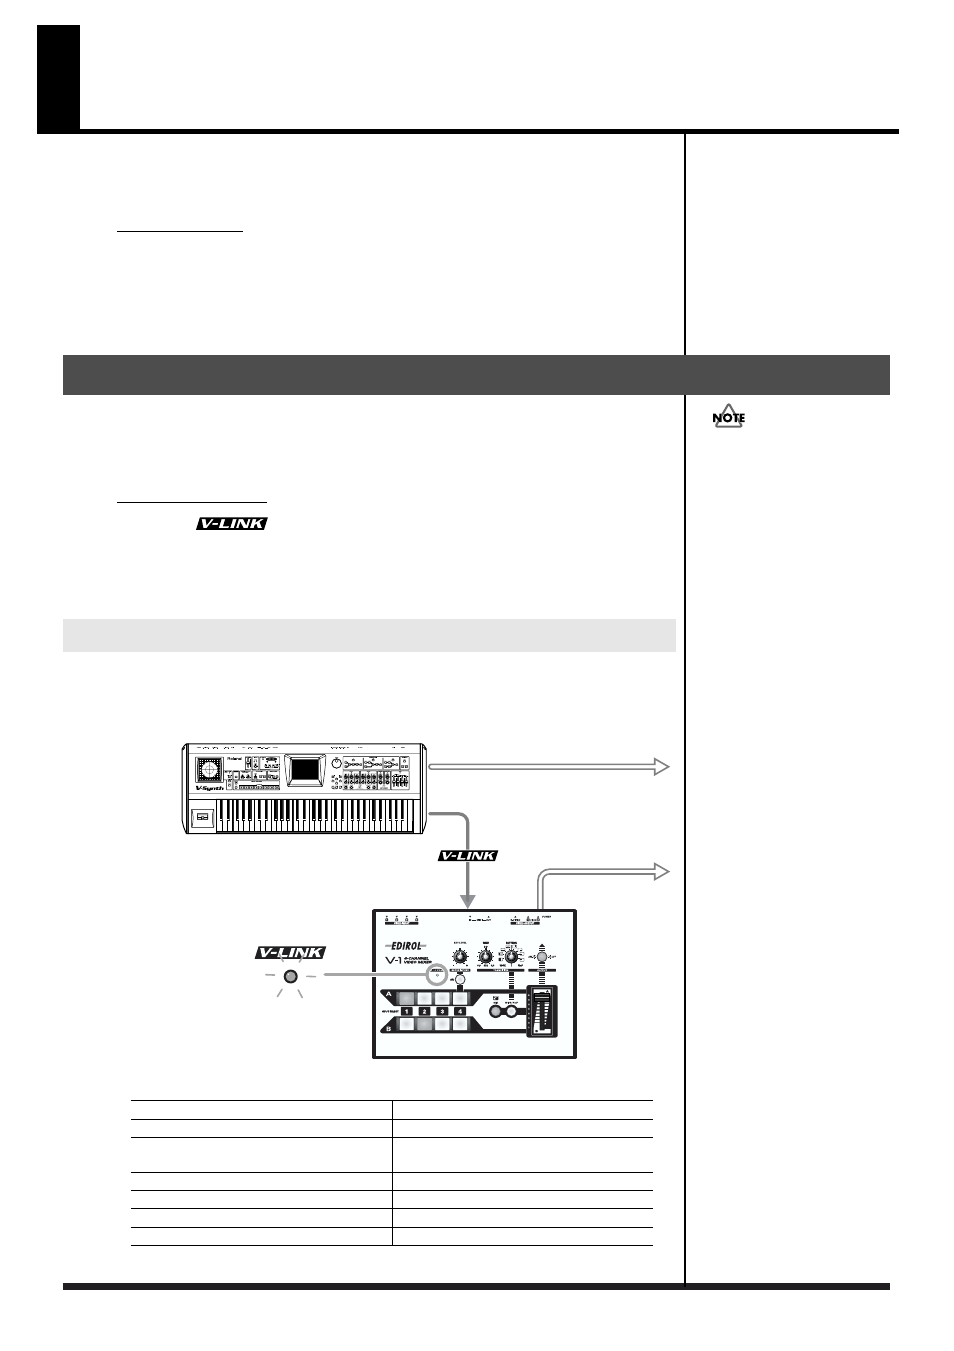 Using v-link to remotely control the v-1, Using v-link, Midi in